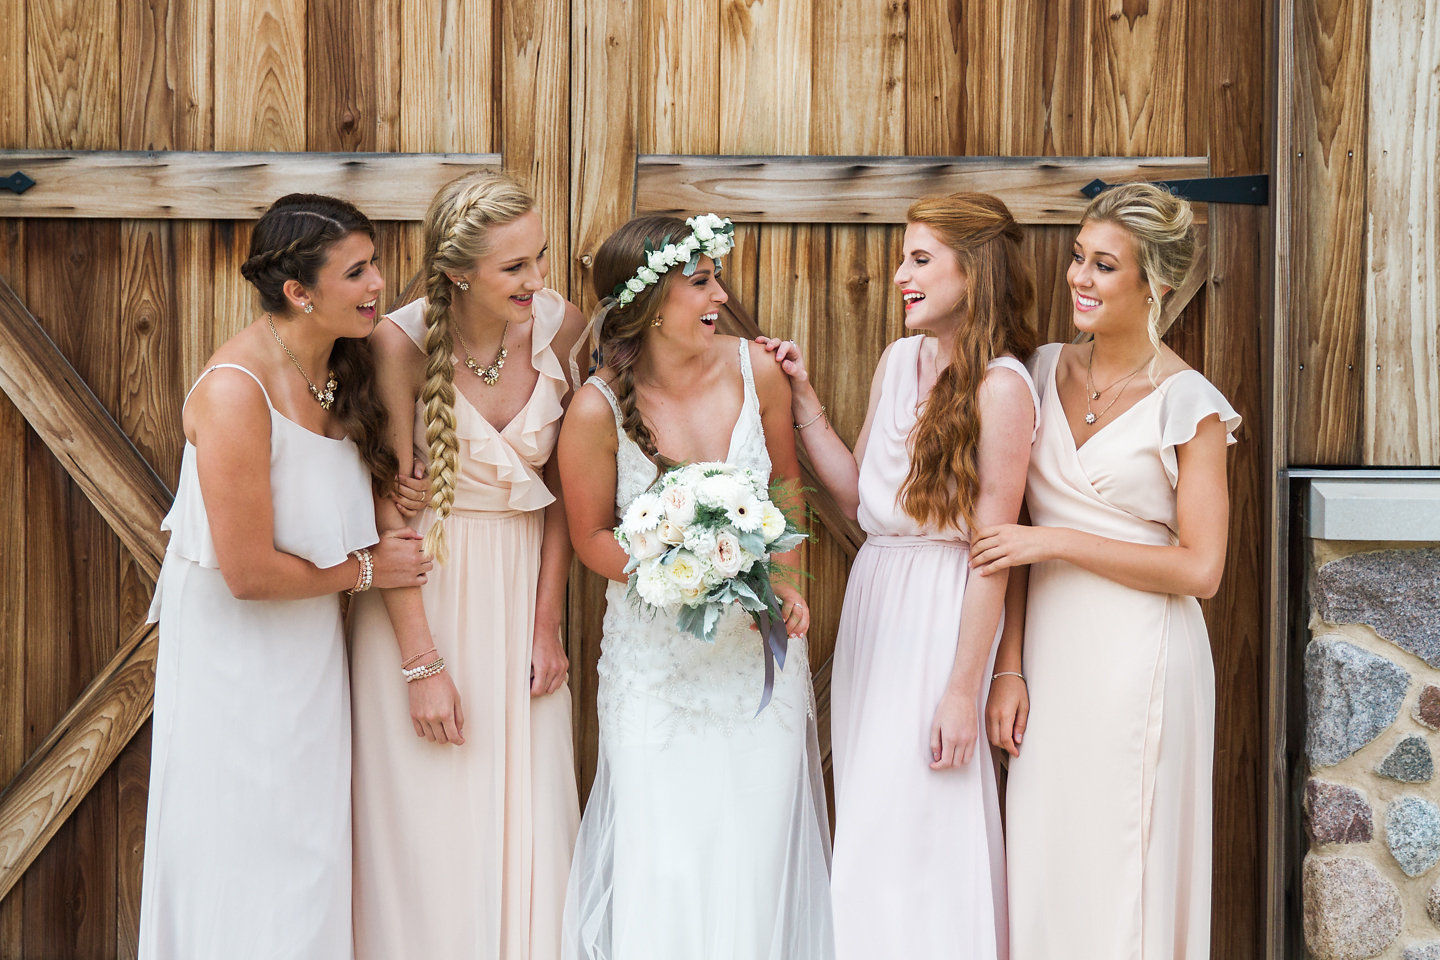 Blush Bridesmaid Dresses by Joanna August